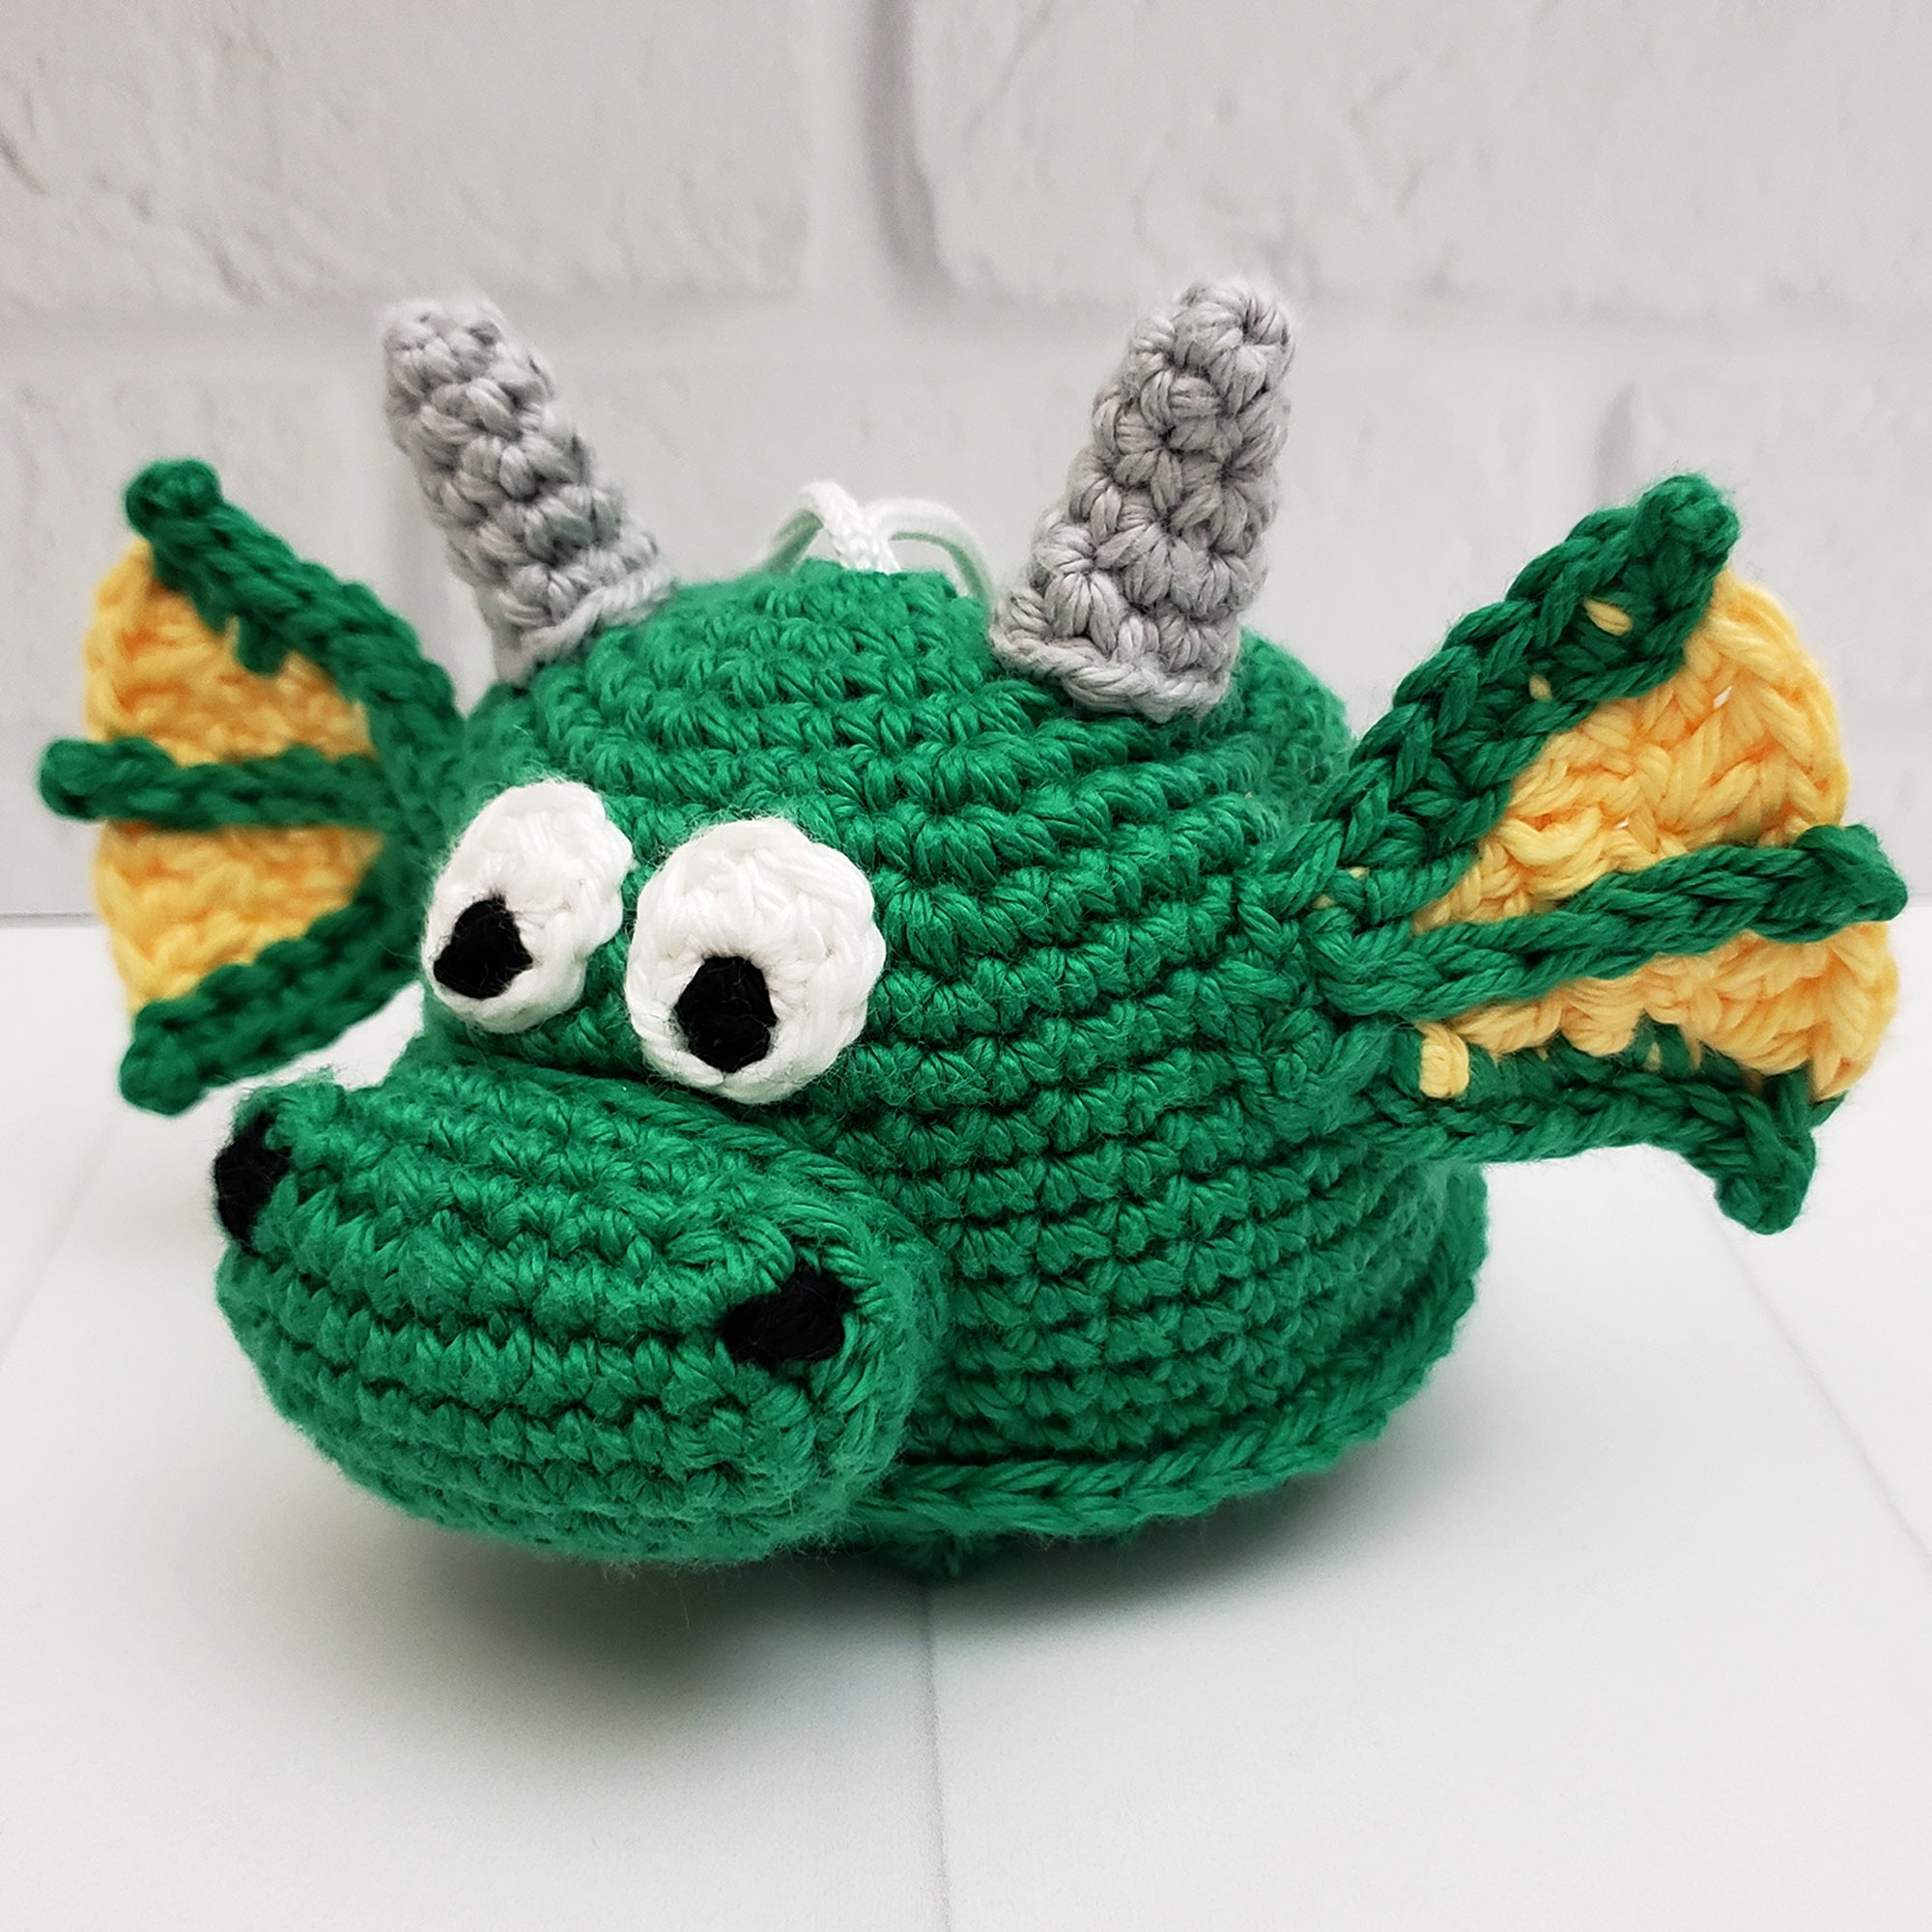 Draco the Dragon Crochet Pattern